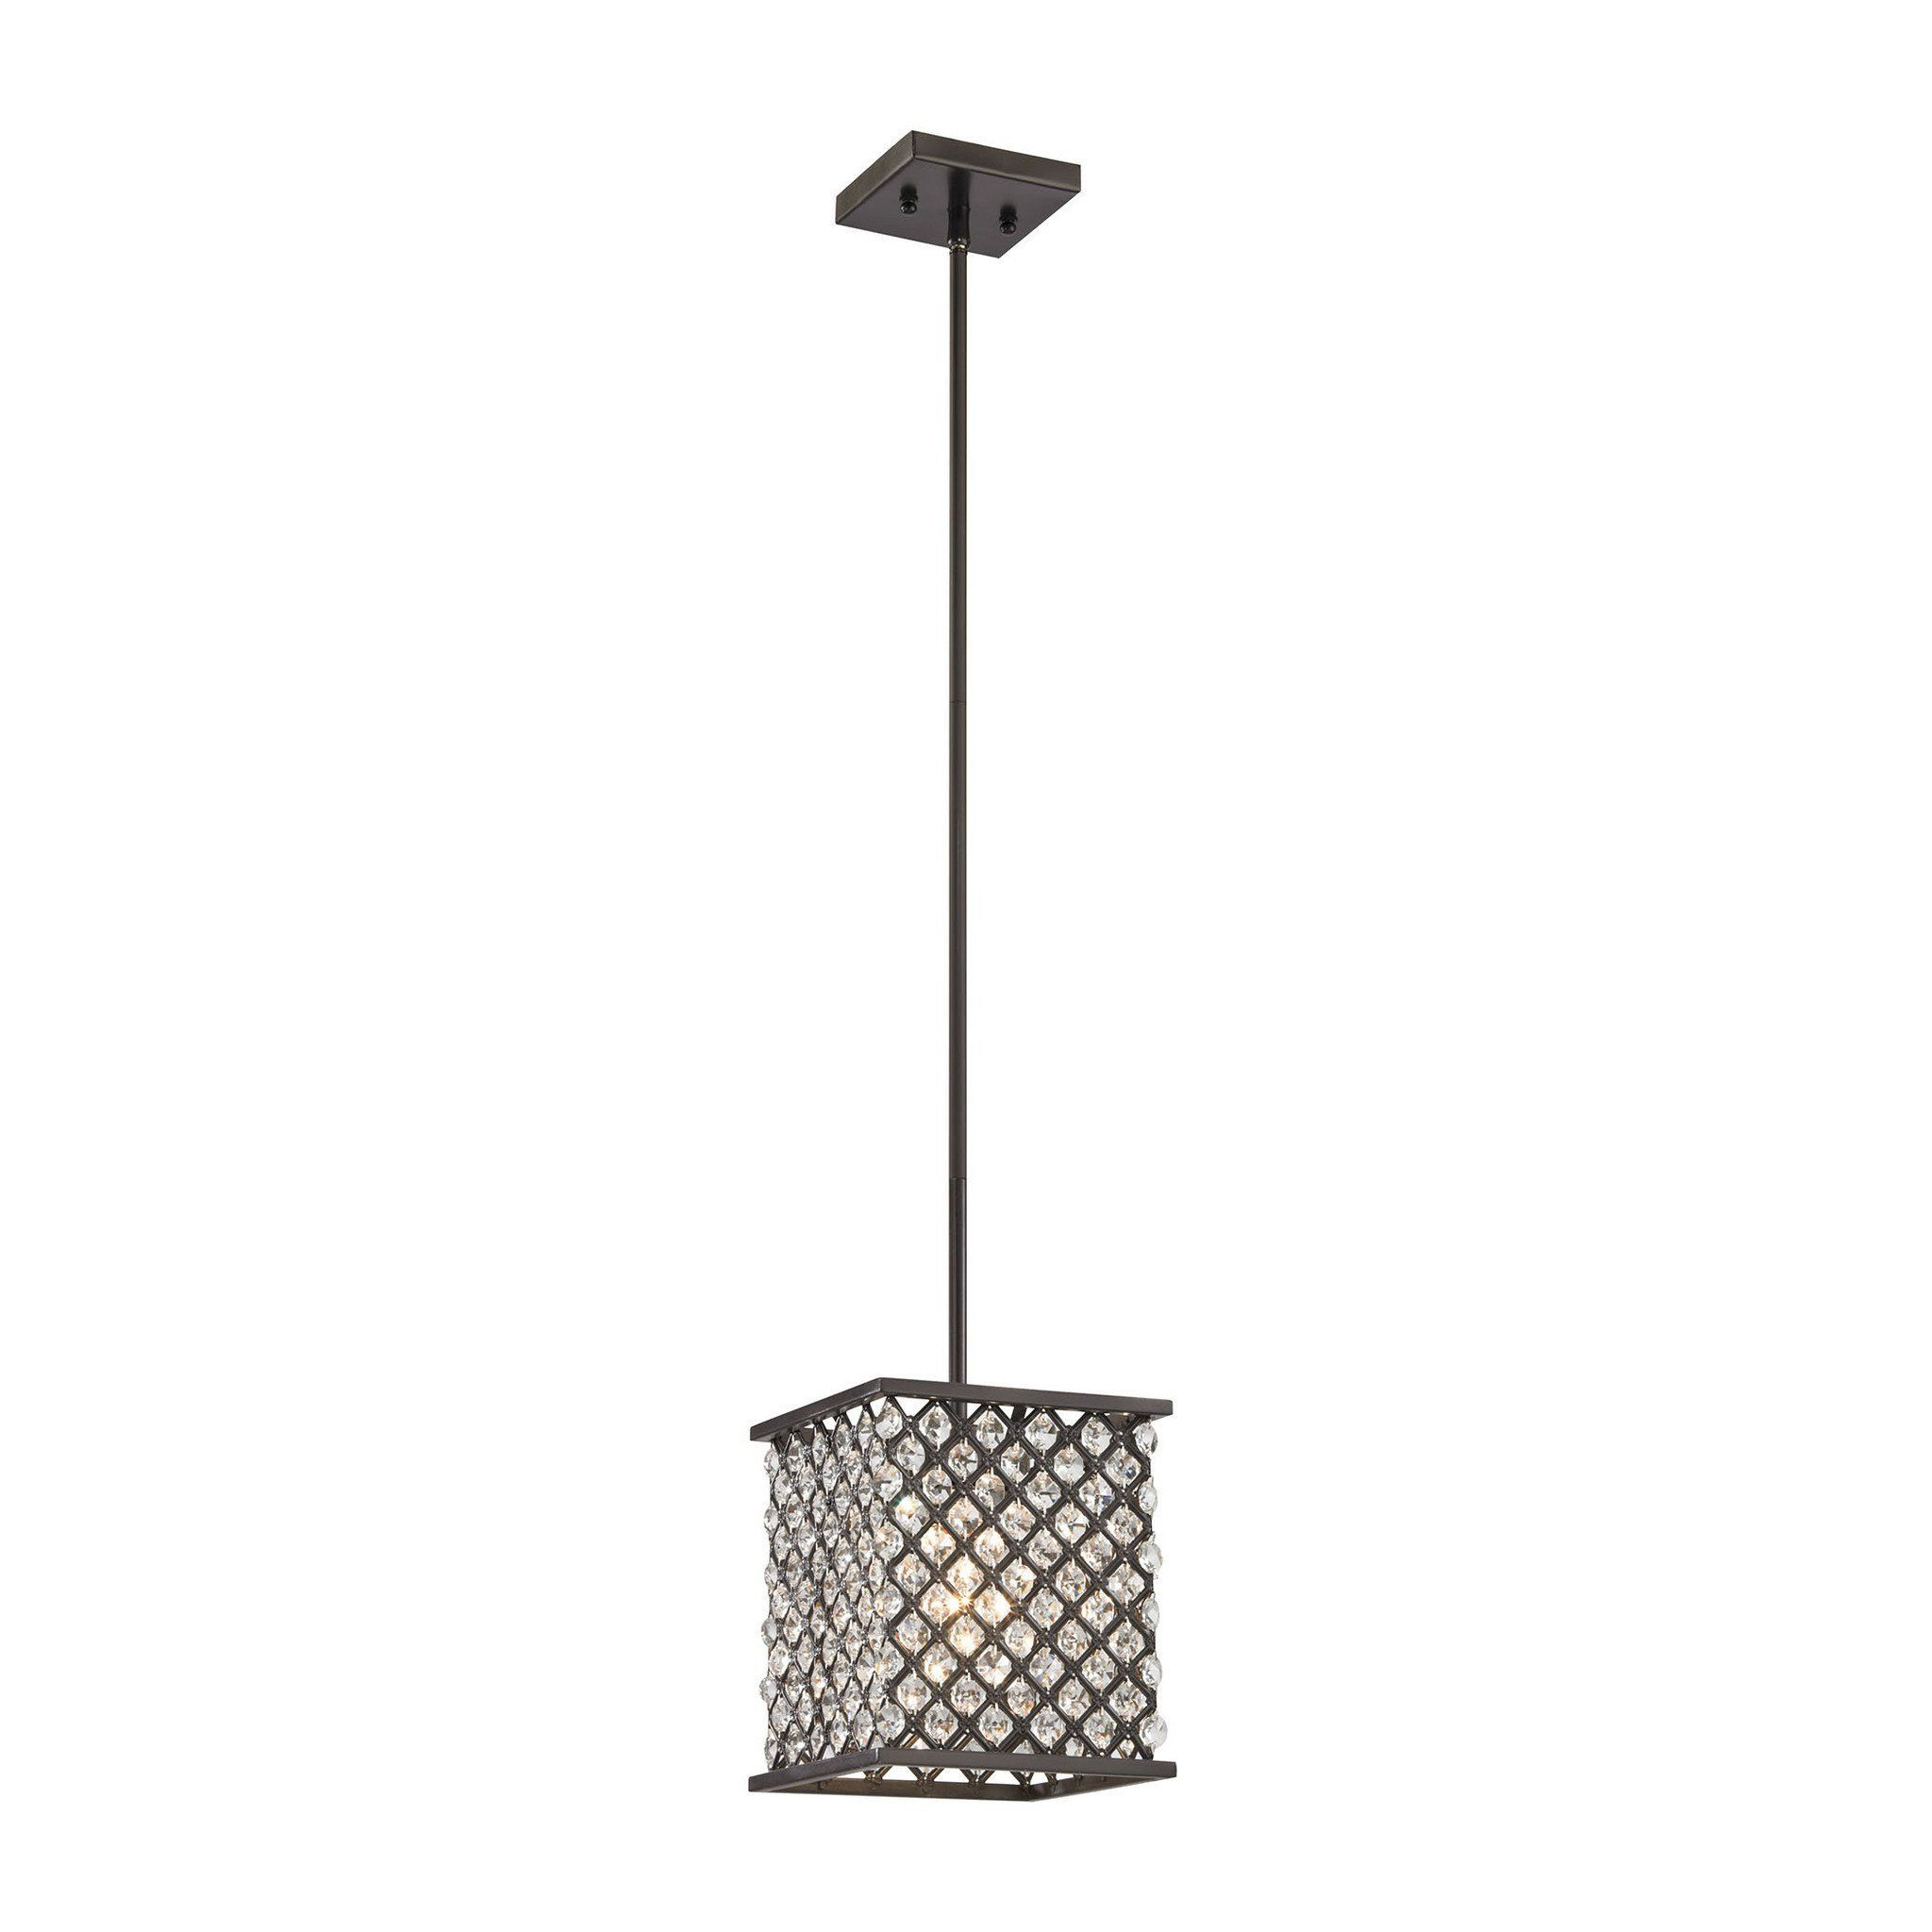 ELK Lighting 32101/1 Genevieve Collection Oil Rubbed Bronze Finish